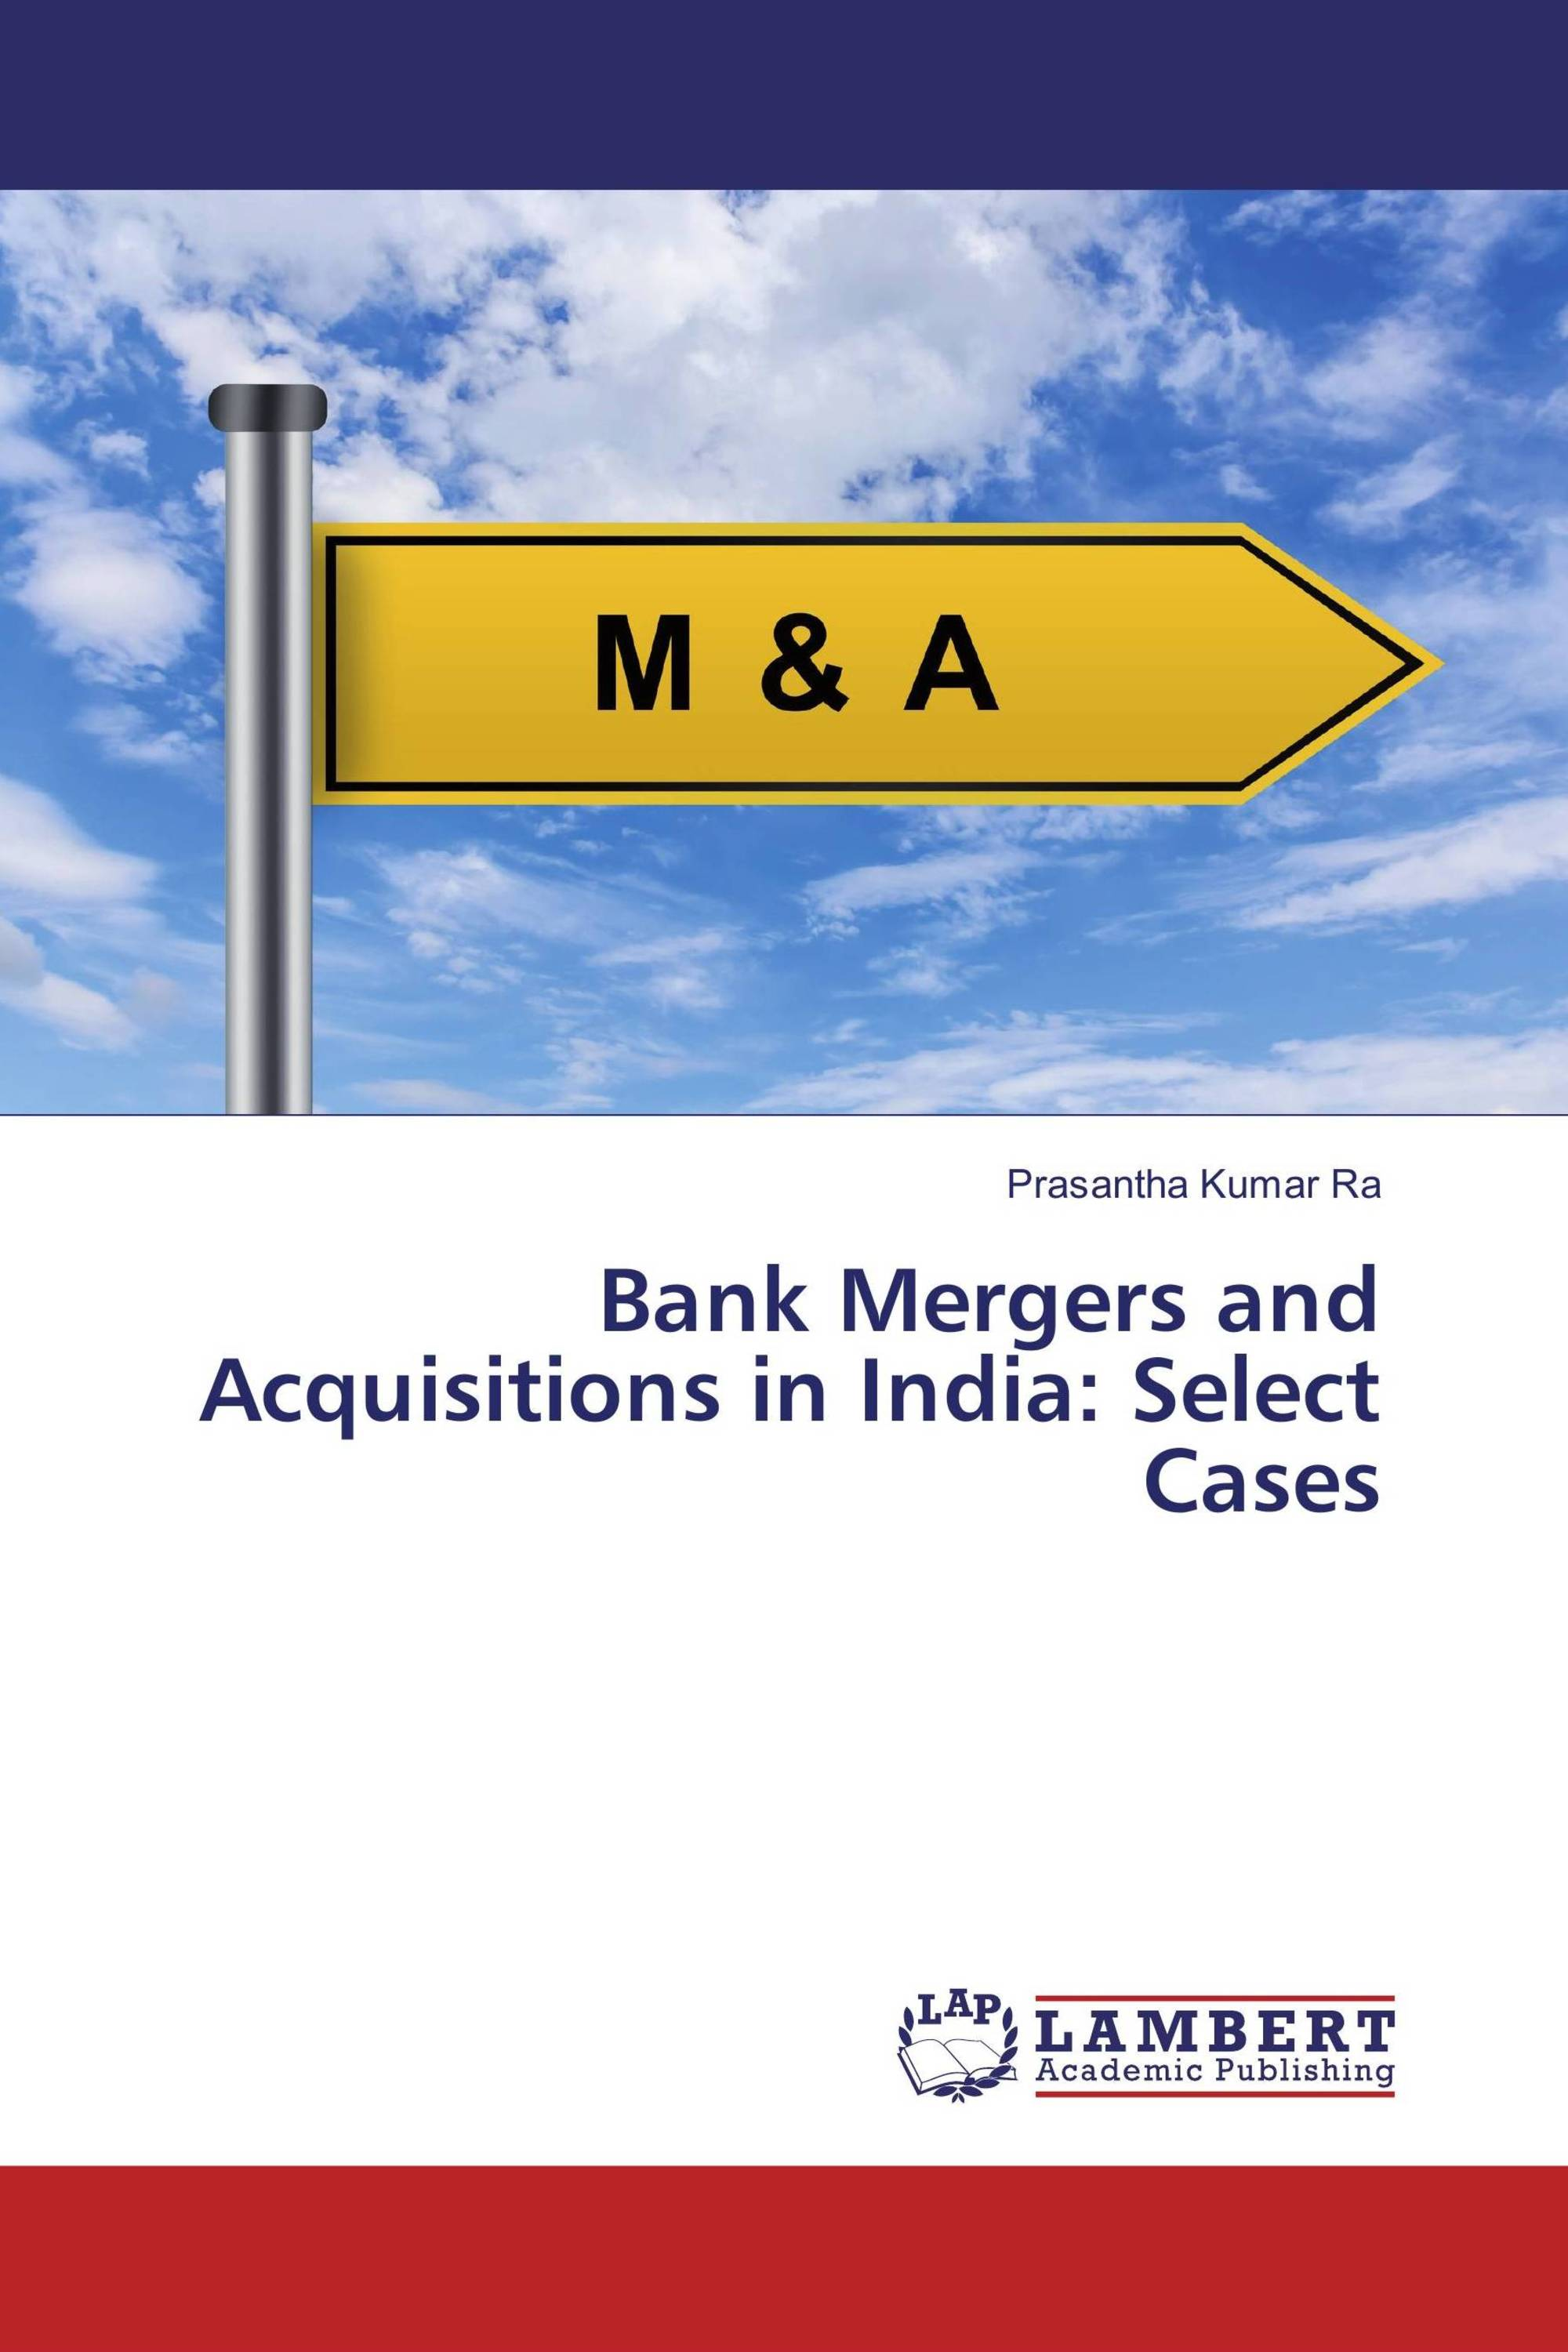 mergers and acquisitions in indian banks Keywords: indian banking sector, mergers, acquisitions, strategy, synergy, growth introduction mergers and acquisitions mergers and acquisitions activity can be defined as a type of restructuring in that they result in some entity reorganization with the aim to provide growth or positive value.